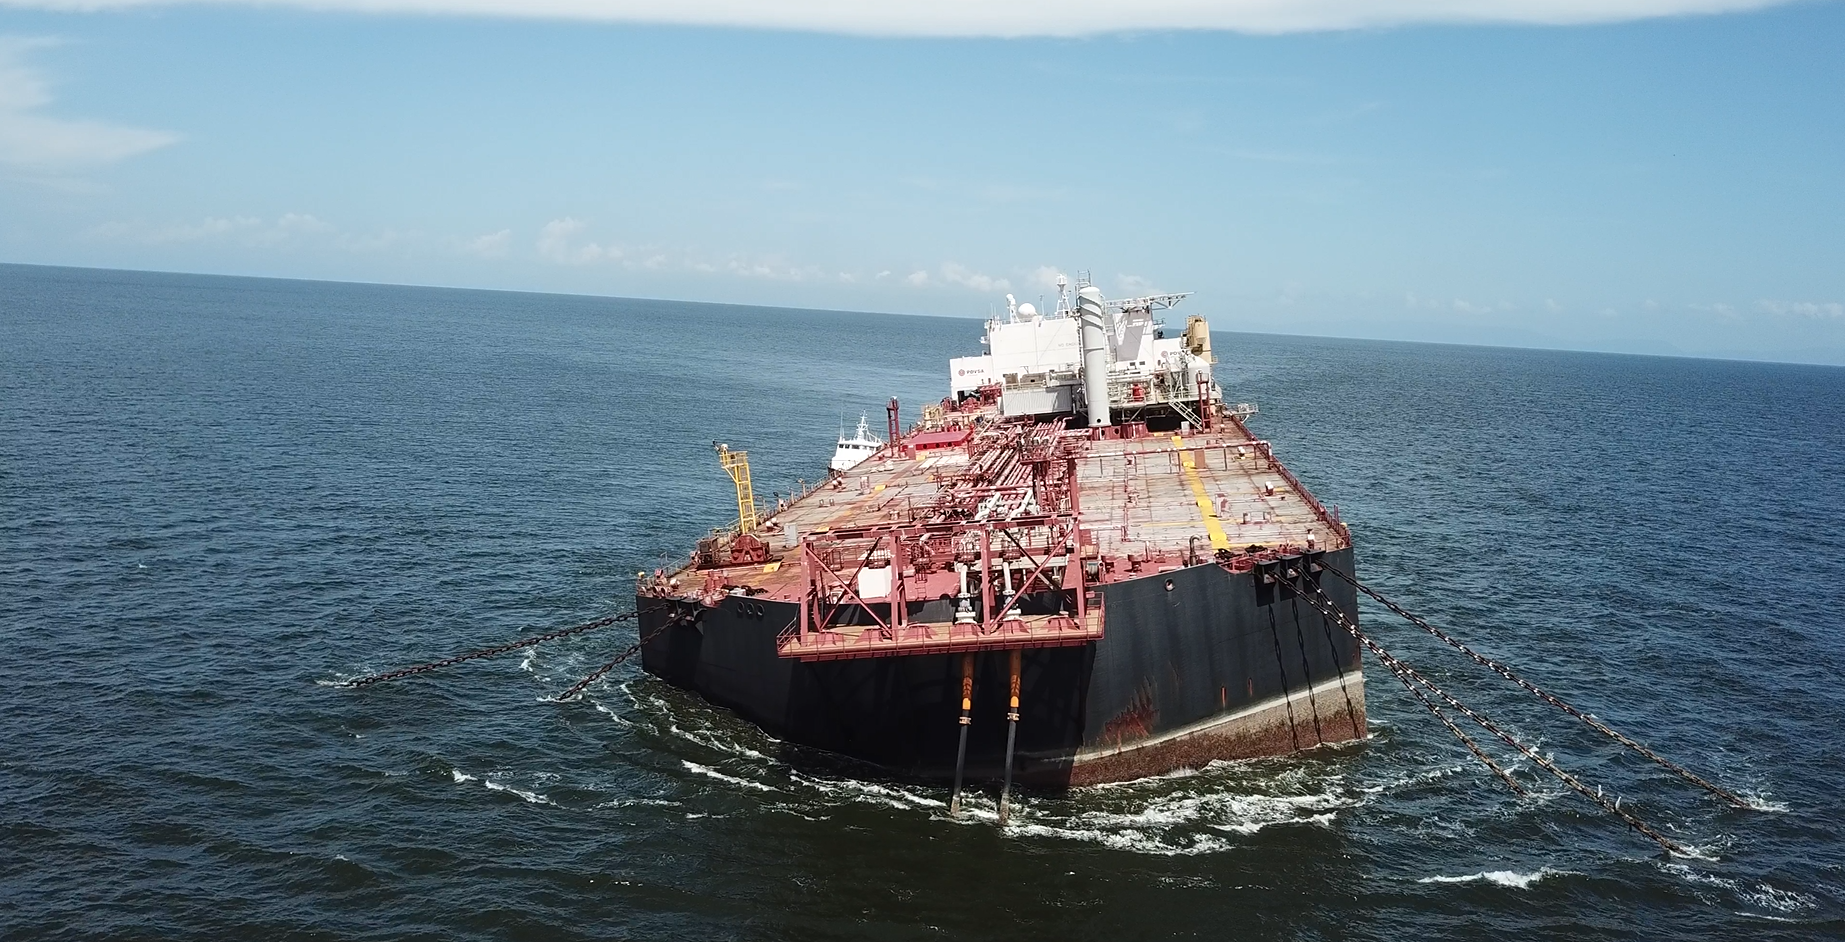 A photo of the FSO Nabarima stranded at sea.